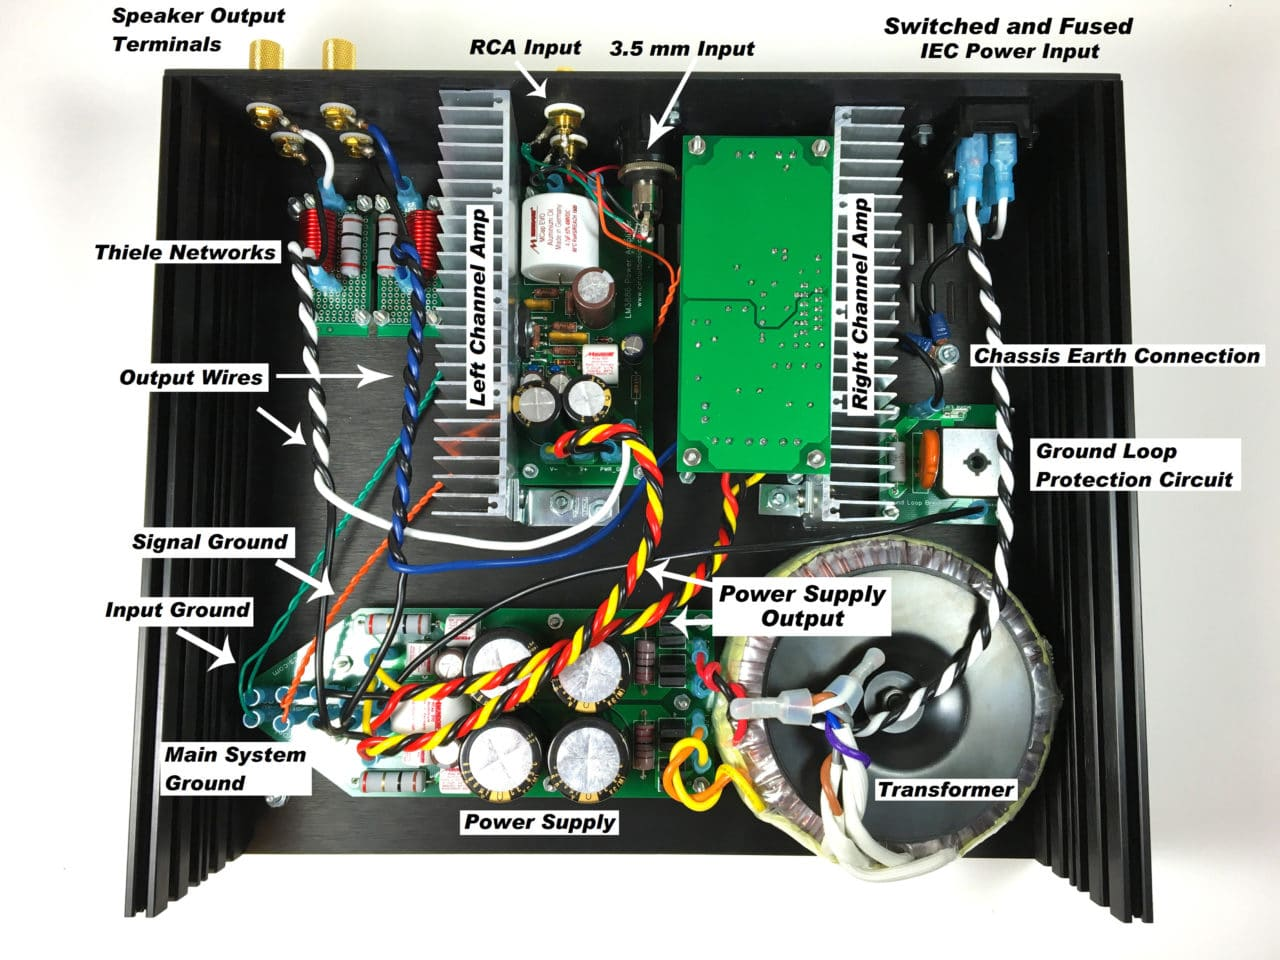 A Complete Guide To Design And Build Hi Fi Lm3886 Amplifier Lowpower With Digital Volume Control Amp Circuit Diagram Board Is Close The Rca 35 Mm Input Terminals In This Arrangement Heat Sinks Provide Some Shielding From Thiele Networks Ac